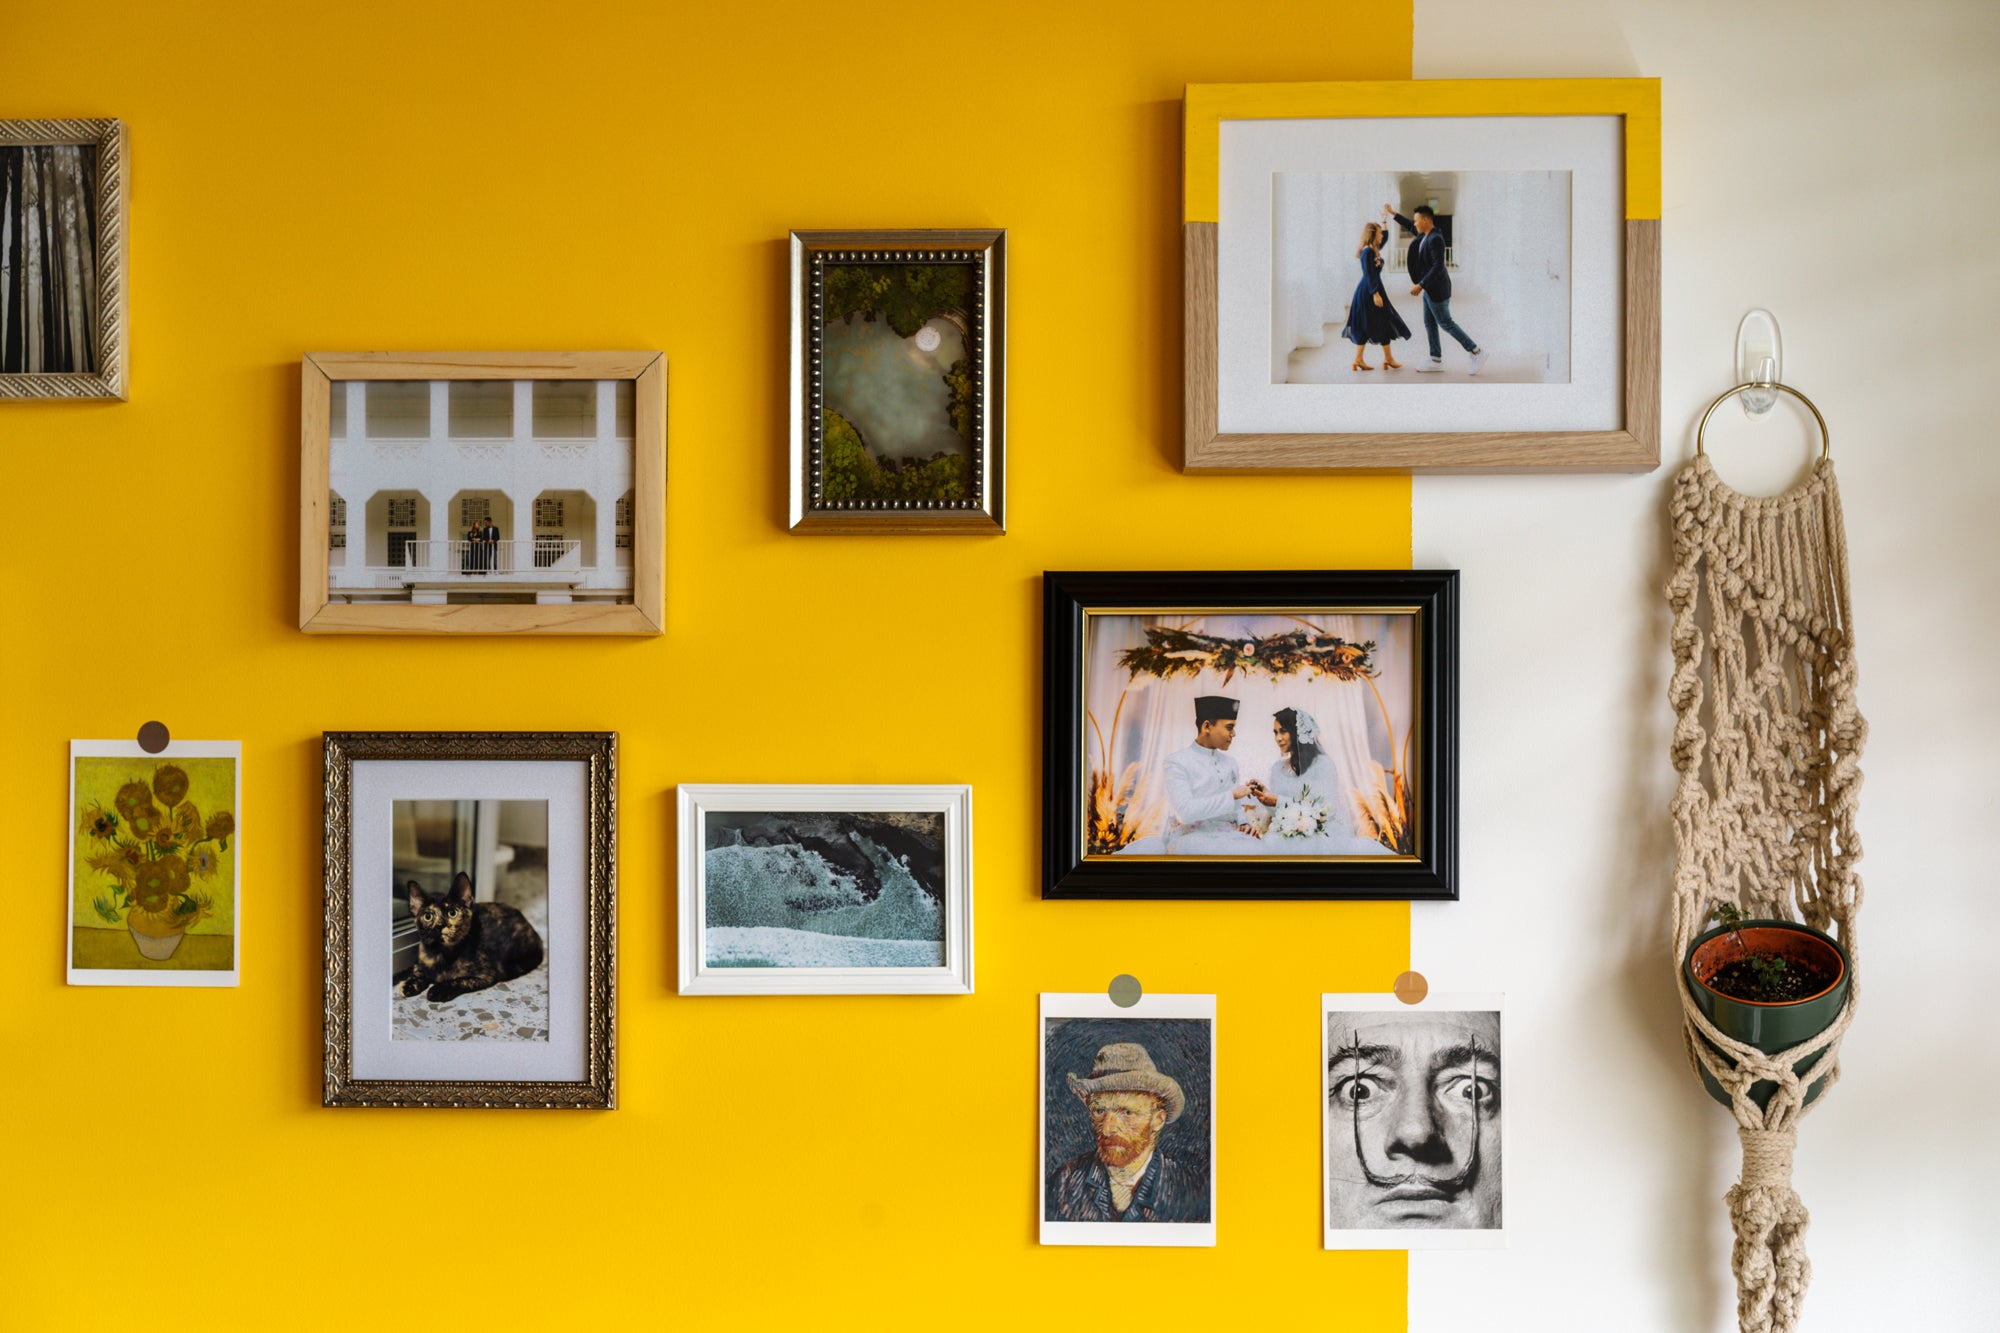 yellow wall filled with hanging photo frames and art